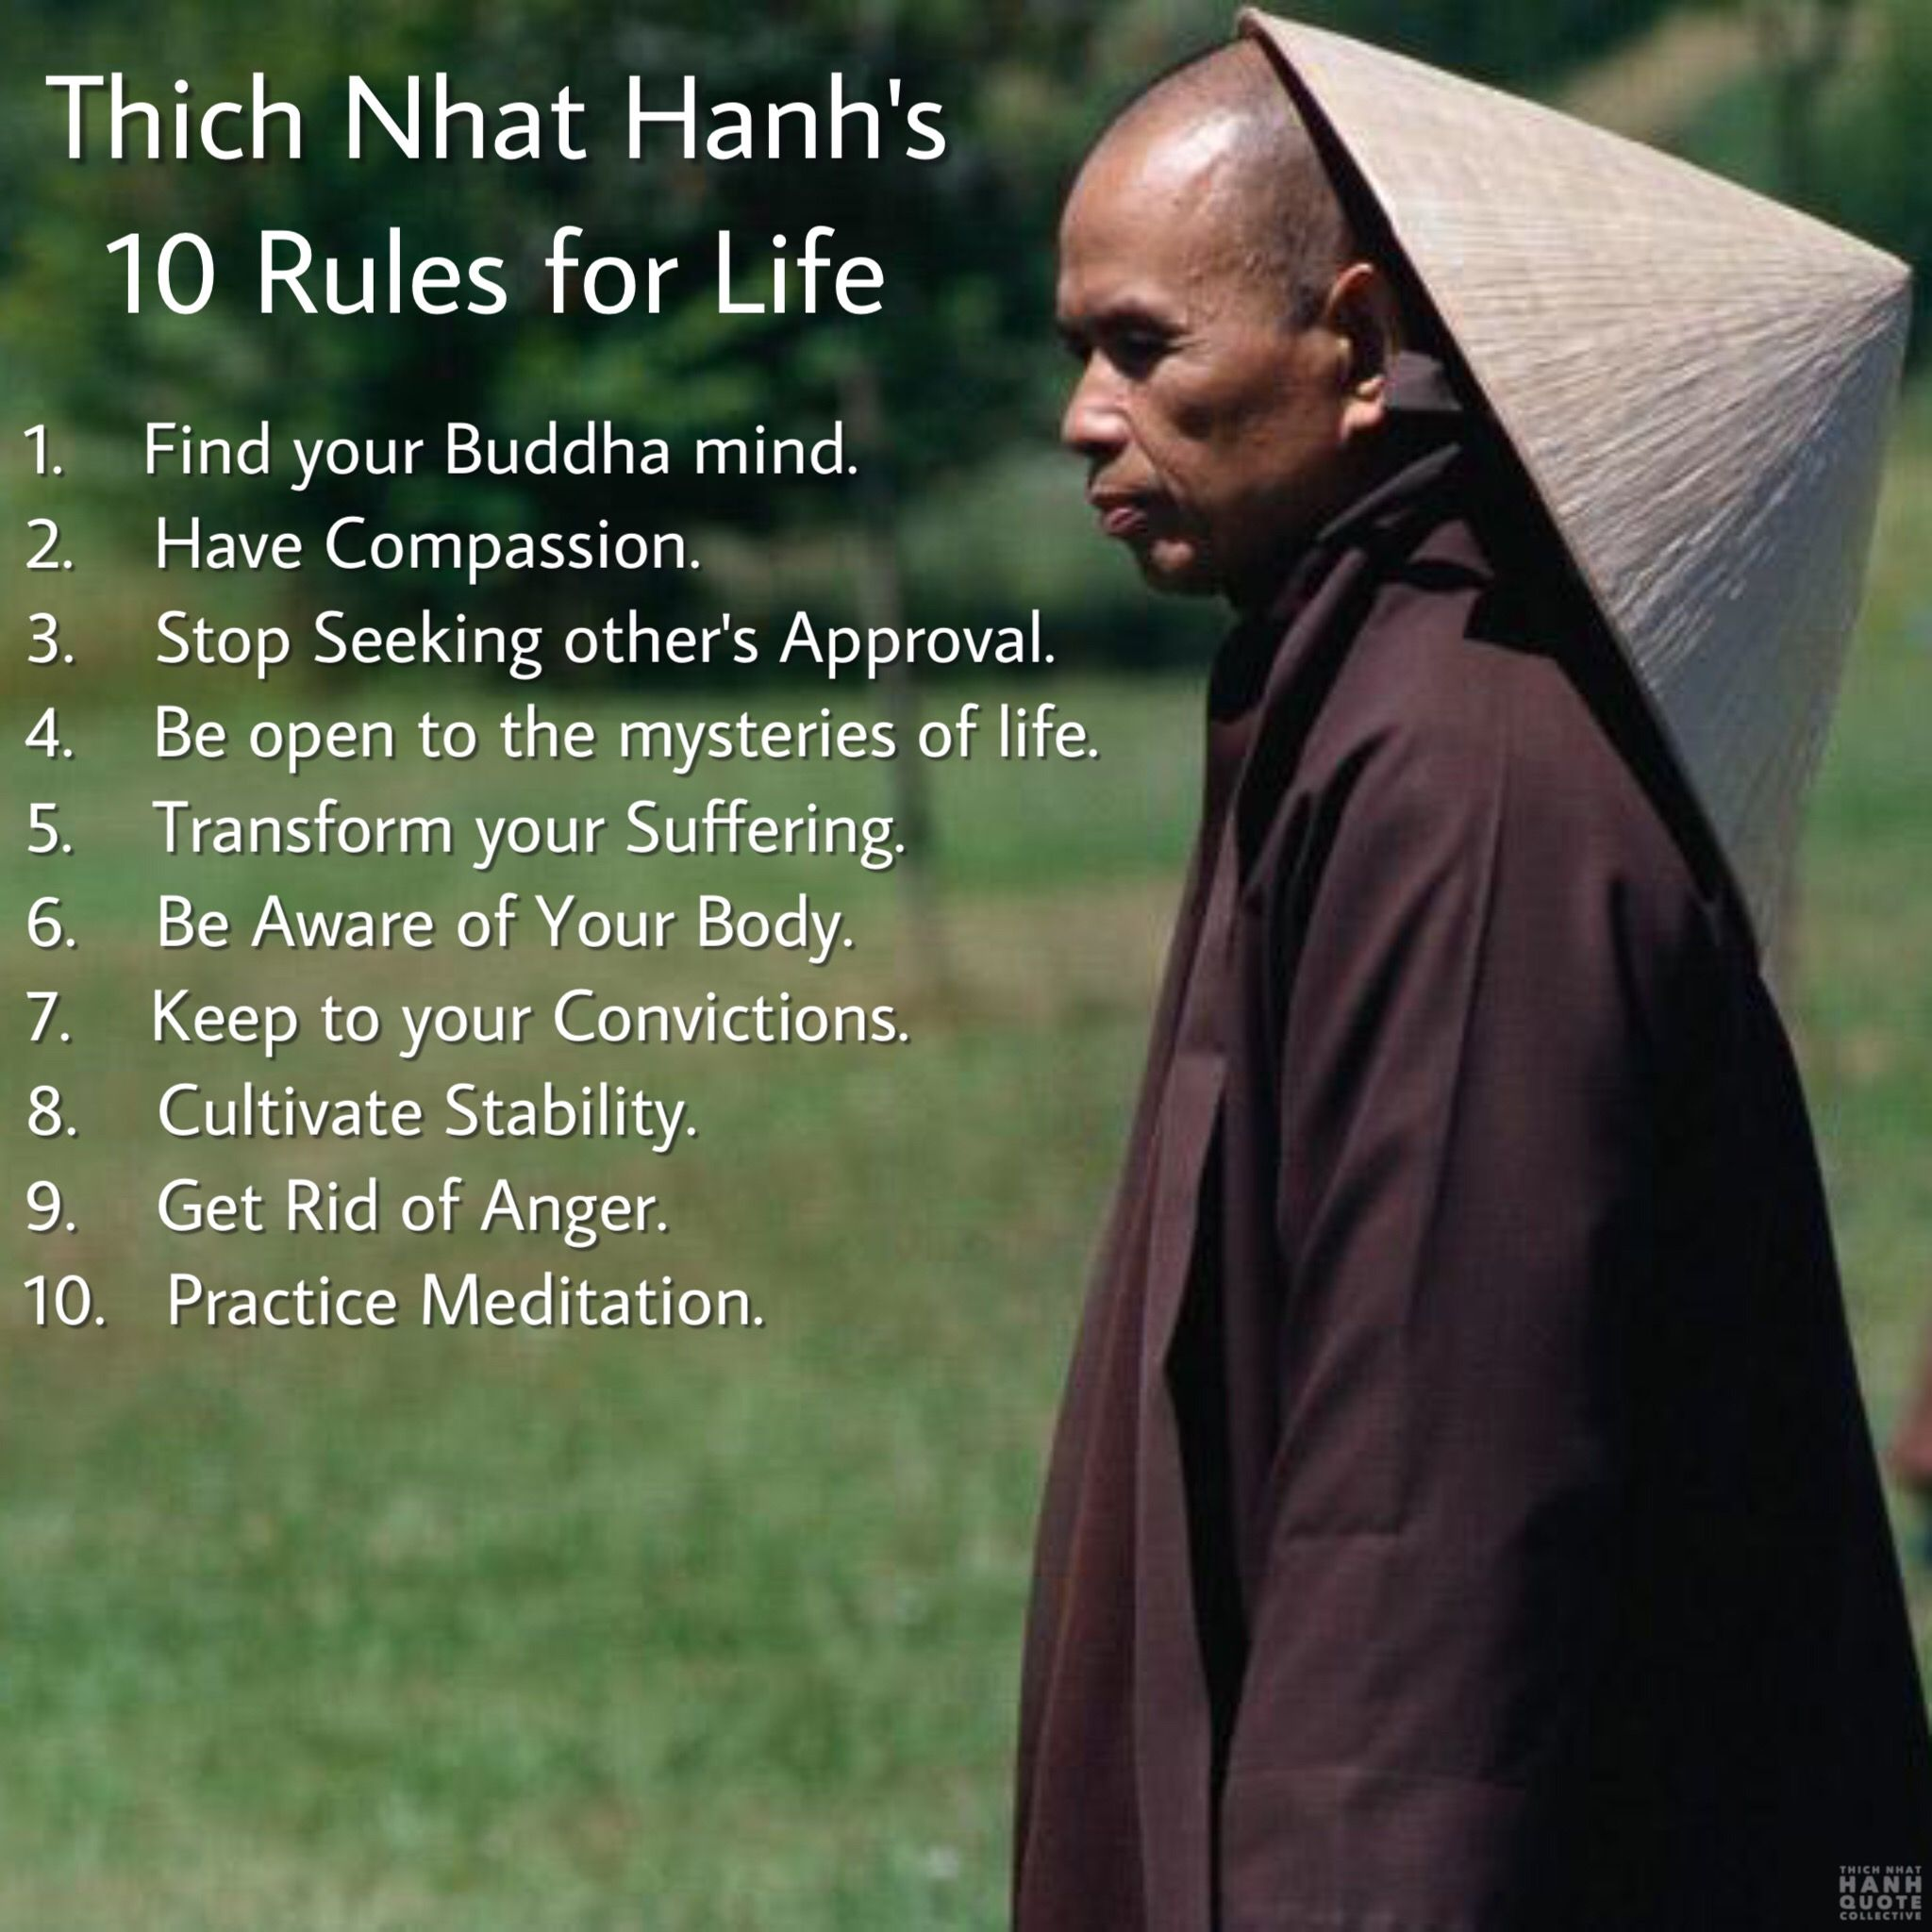 Kill The Buddha Quote: Thich Nhat Hanh's 10 Rules For Life. 1. Find Your Buddha